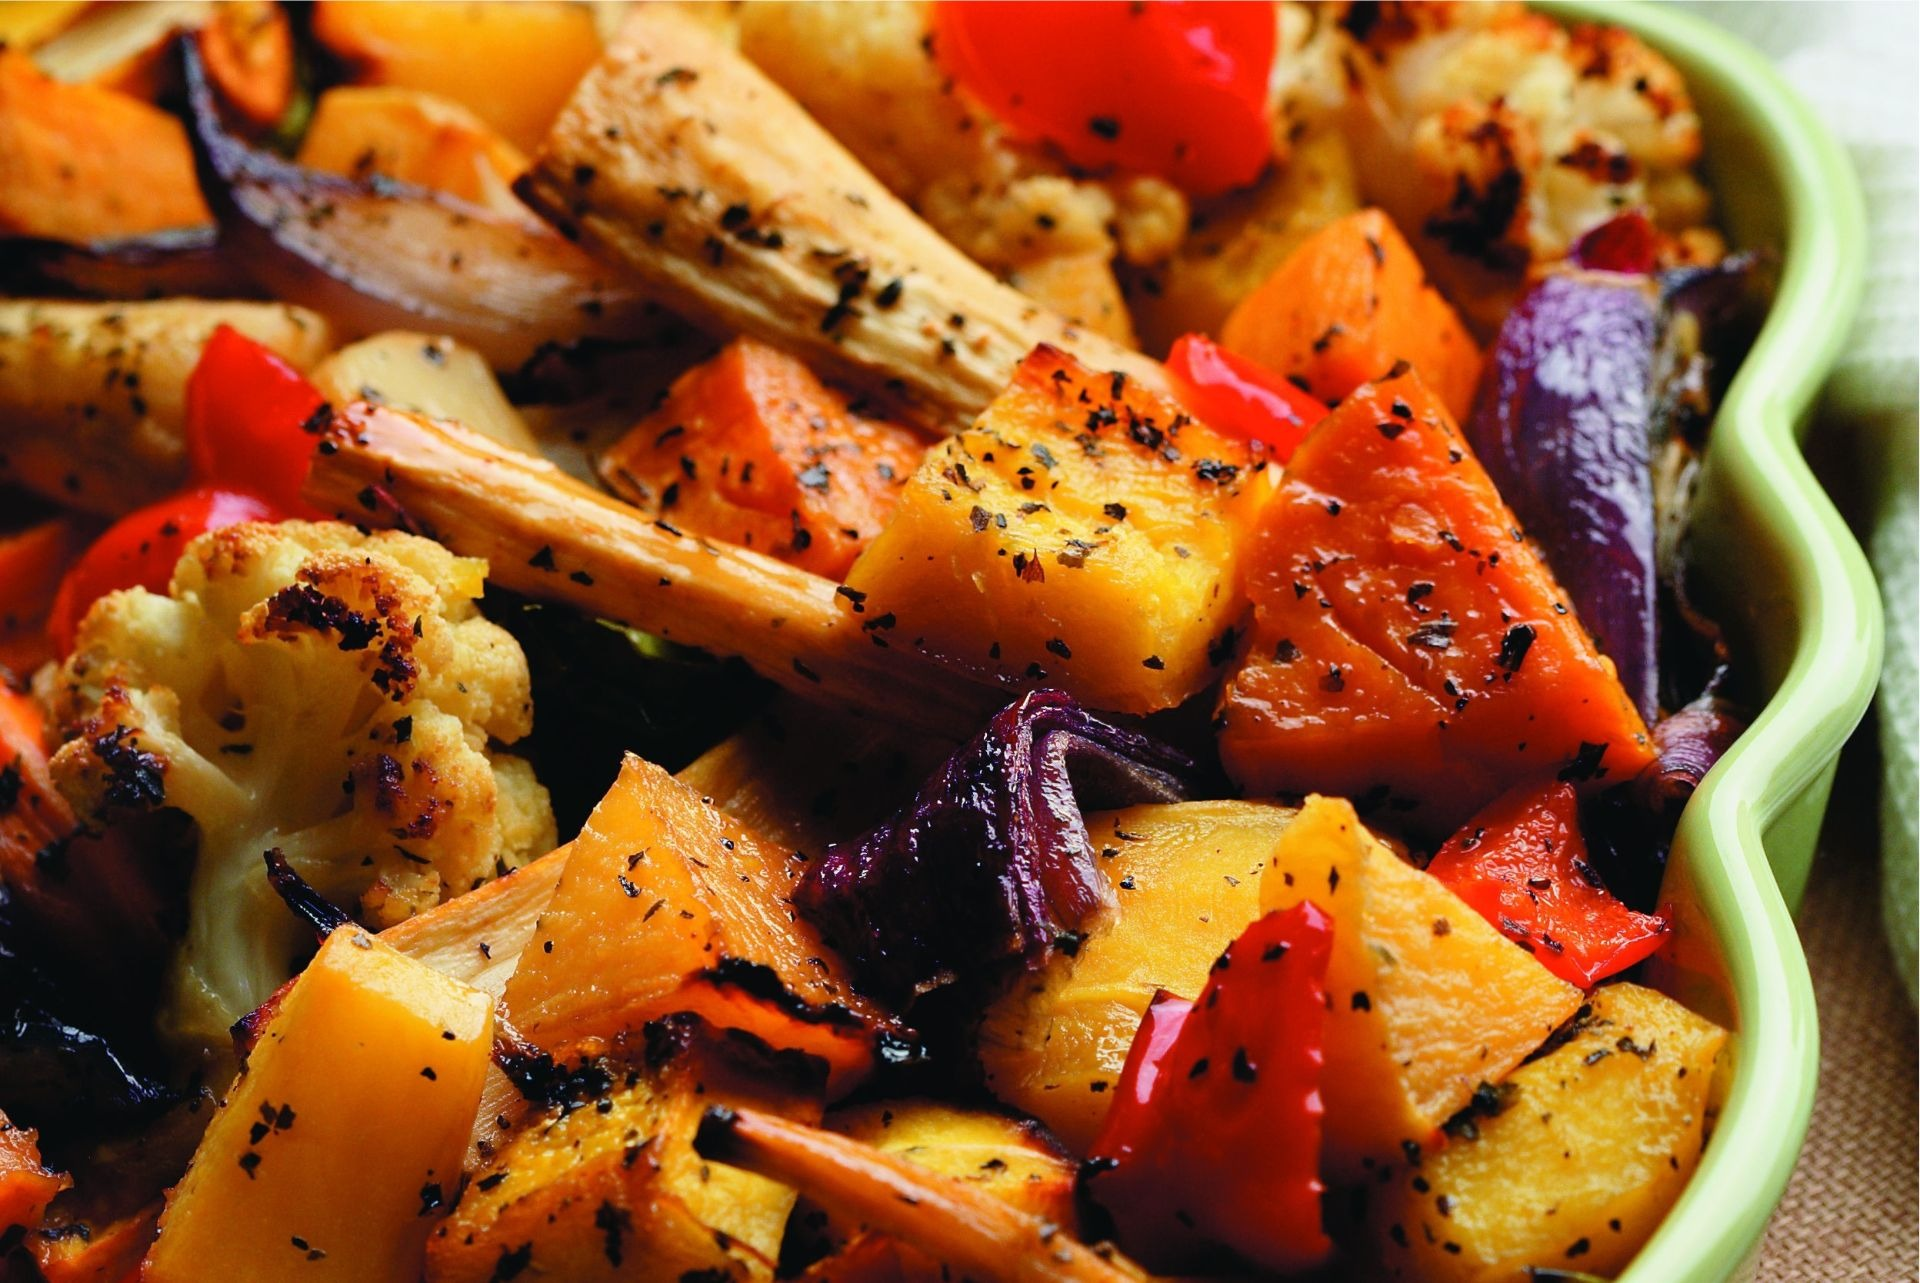 Roasted red pepper, squash, sweet potato, carrot and cauliflower in a casserole dish